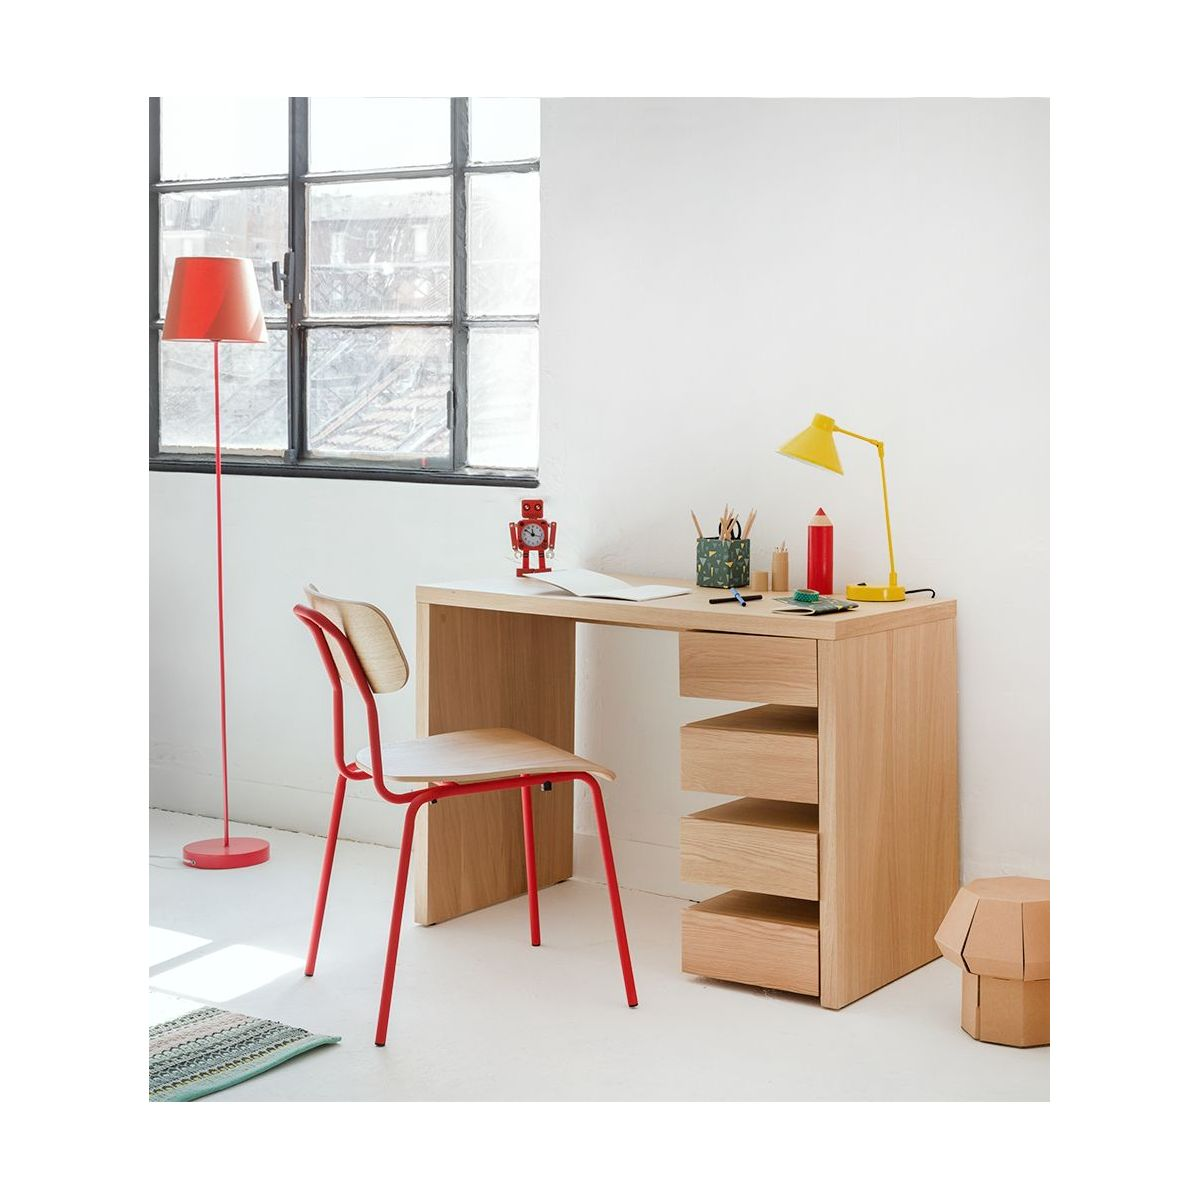 hester chaises de salle manger rouge bois habitat. Black Bedroom Furniture Sets. Home Design Ideas